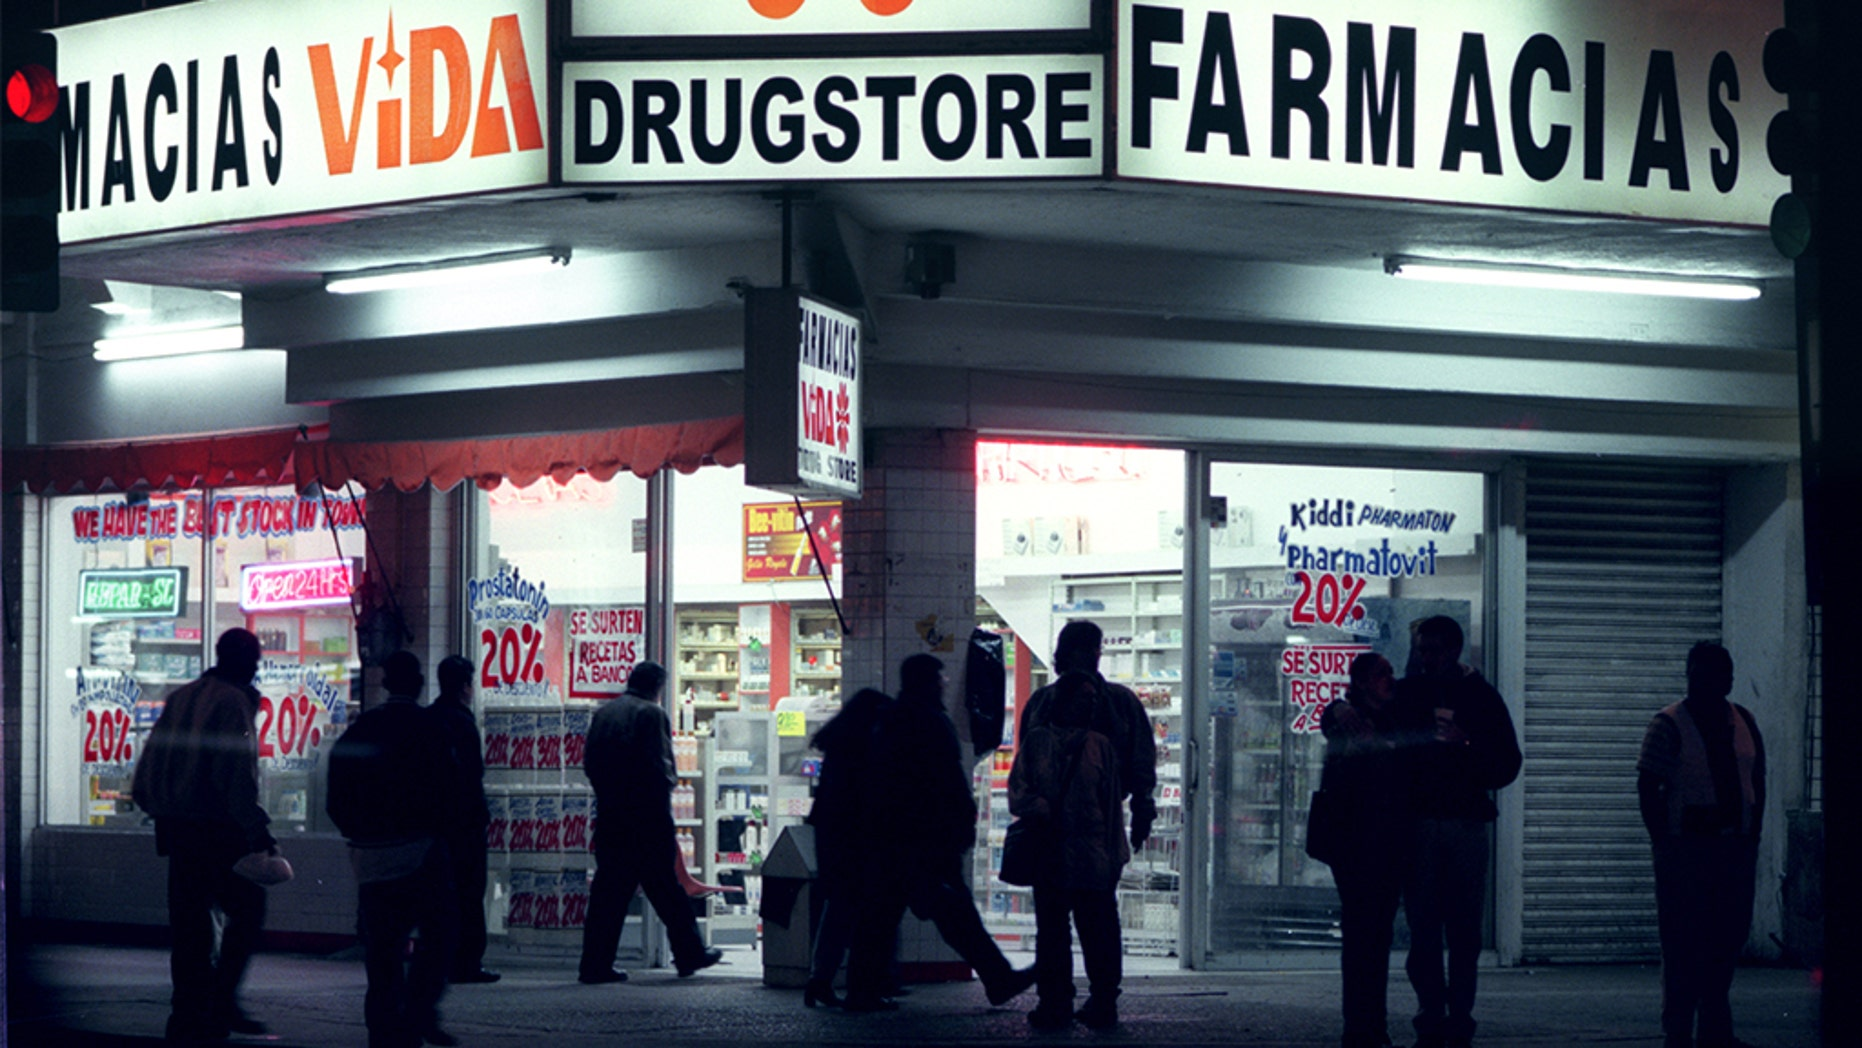 Pharmacies in Tijuana are open to those who come from the United States in search of low prices.